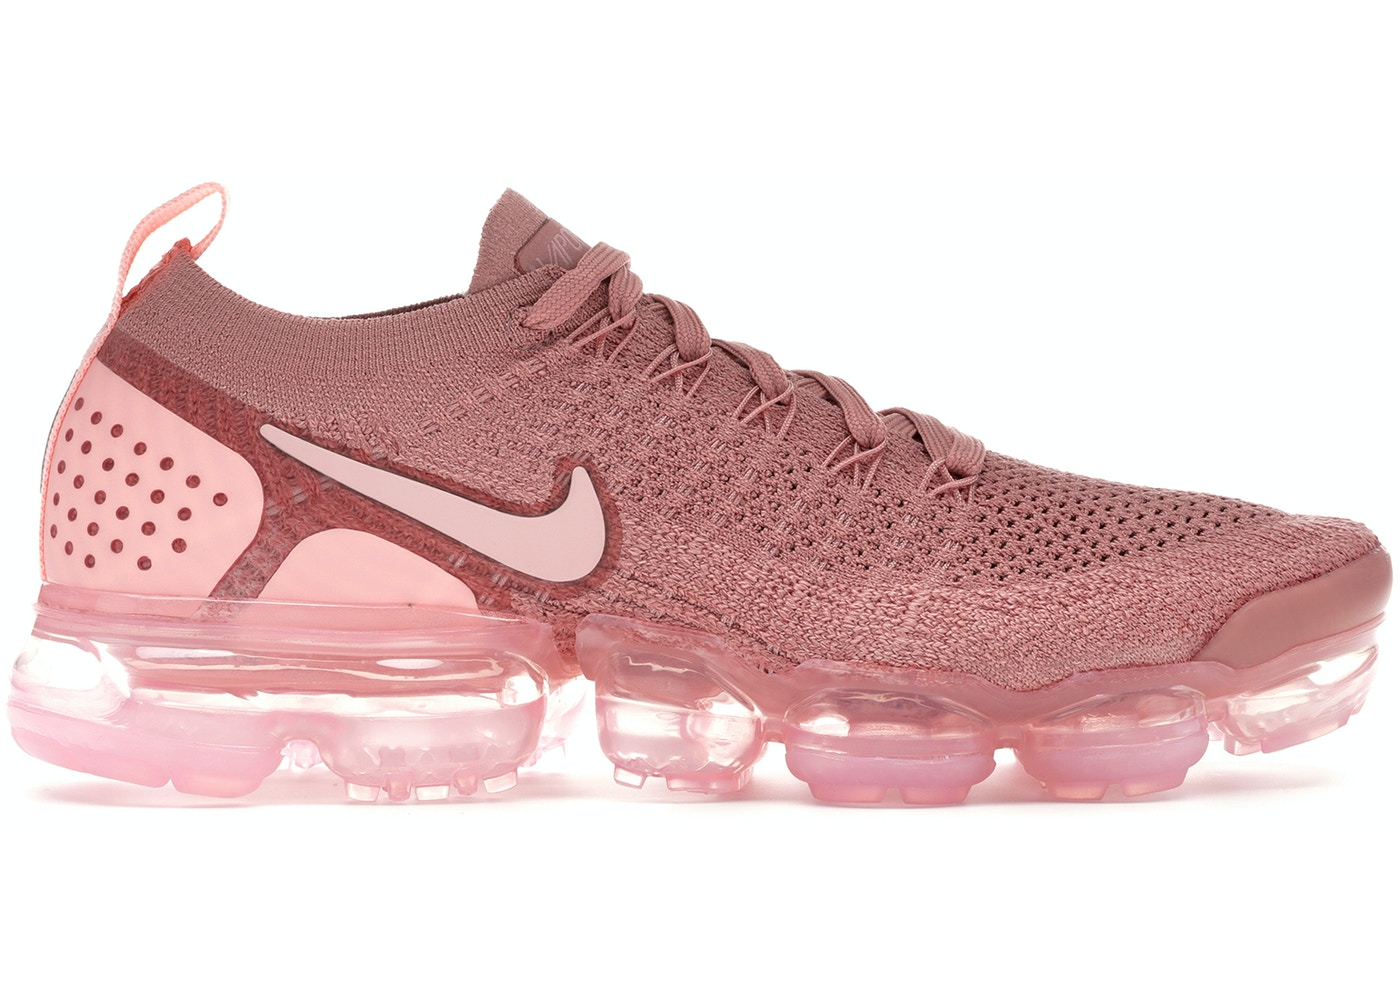 timeless design f1e2f 216c5 Air VaporMax 2 Rust Pink (W)